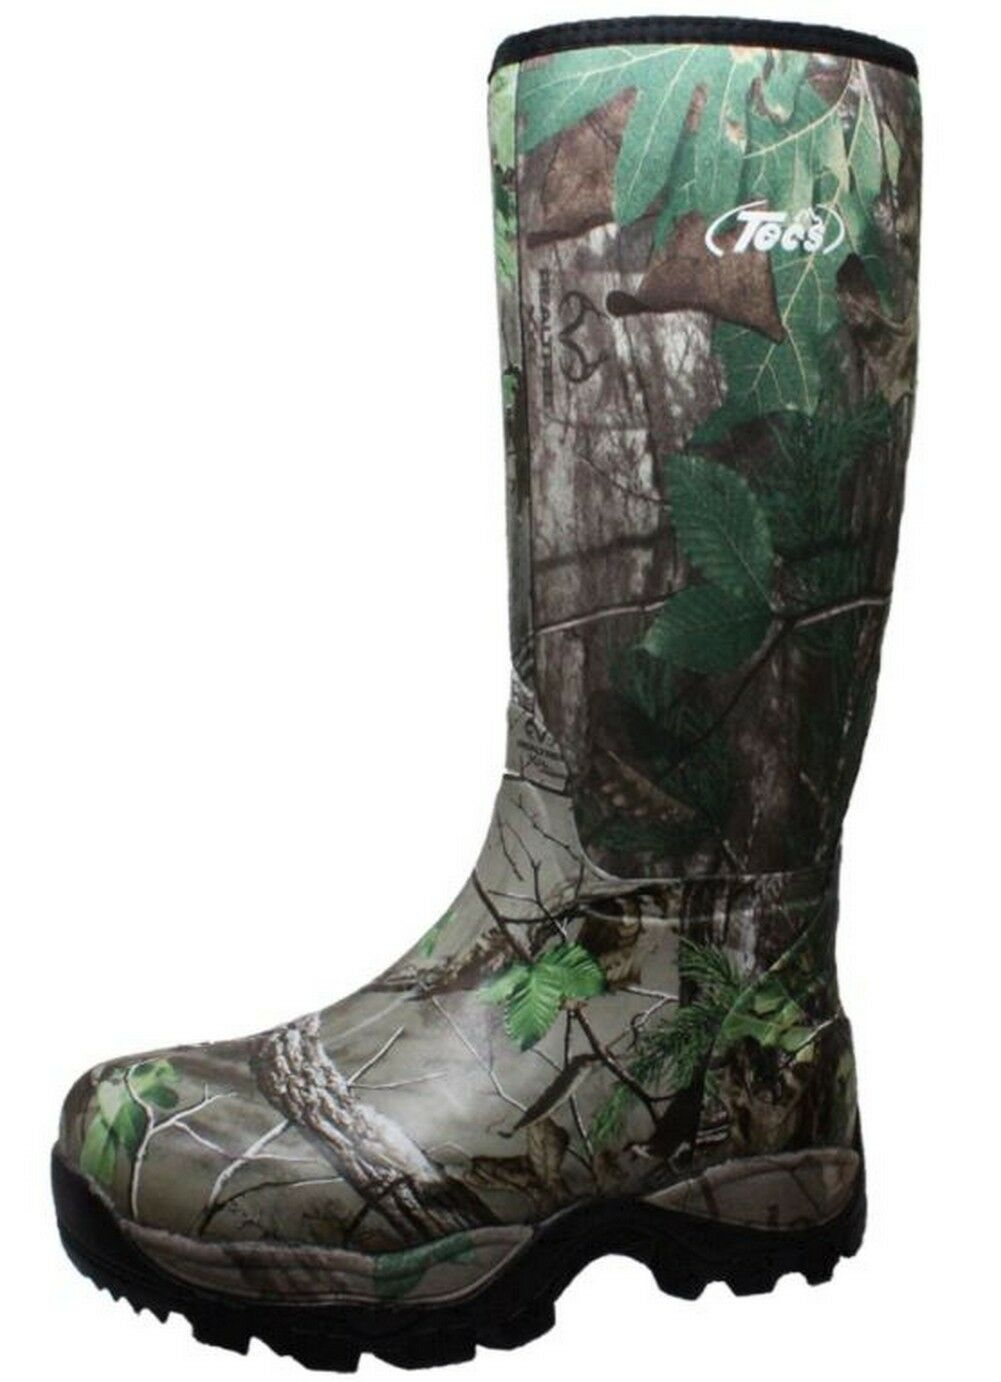 Tecs Men's 16  RealTree Camouflage Rubber Rain Boot Camo Brown Green 9735